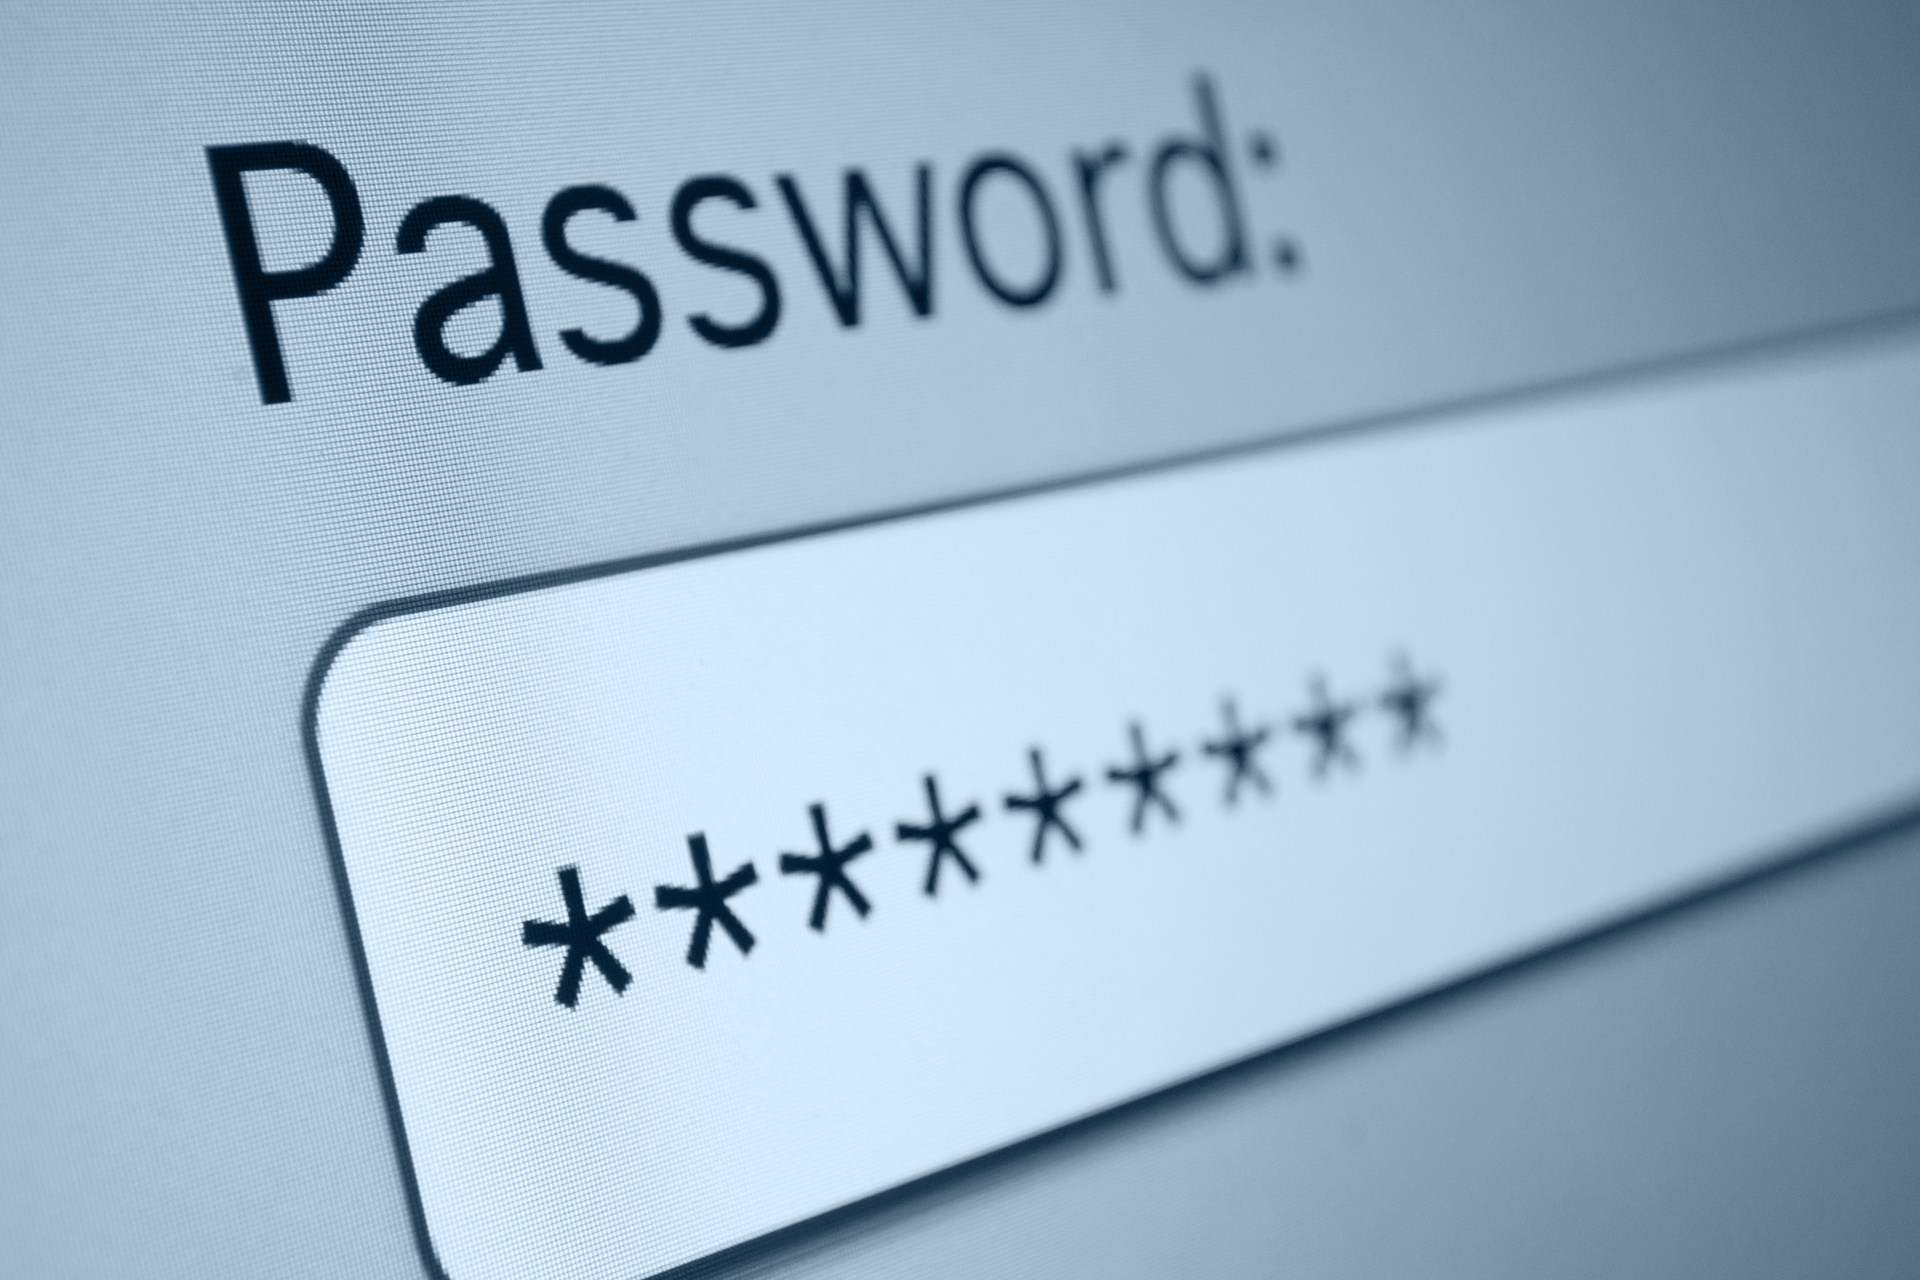 People still use pathetic passwords